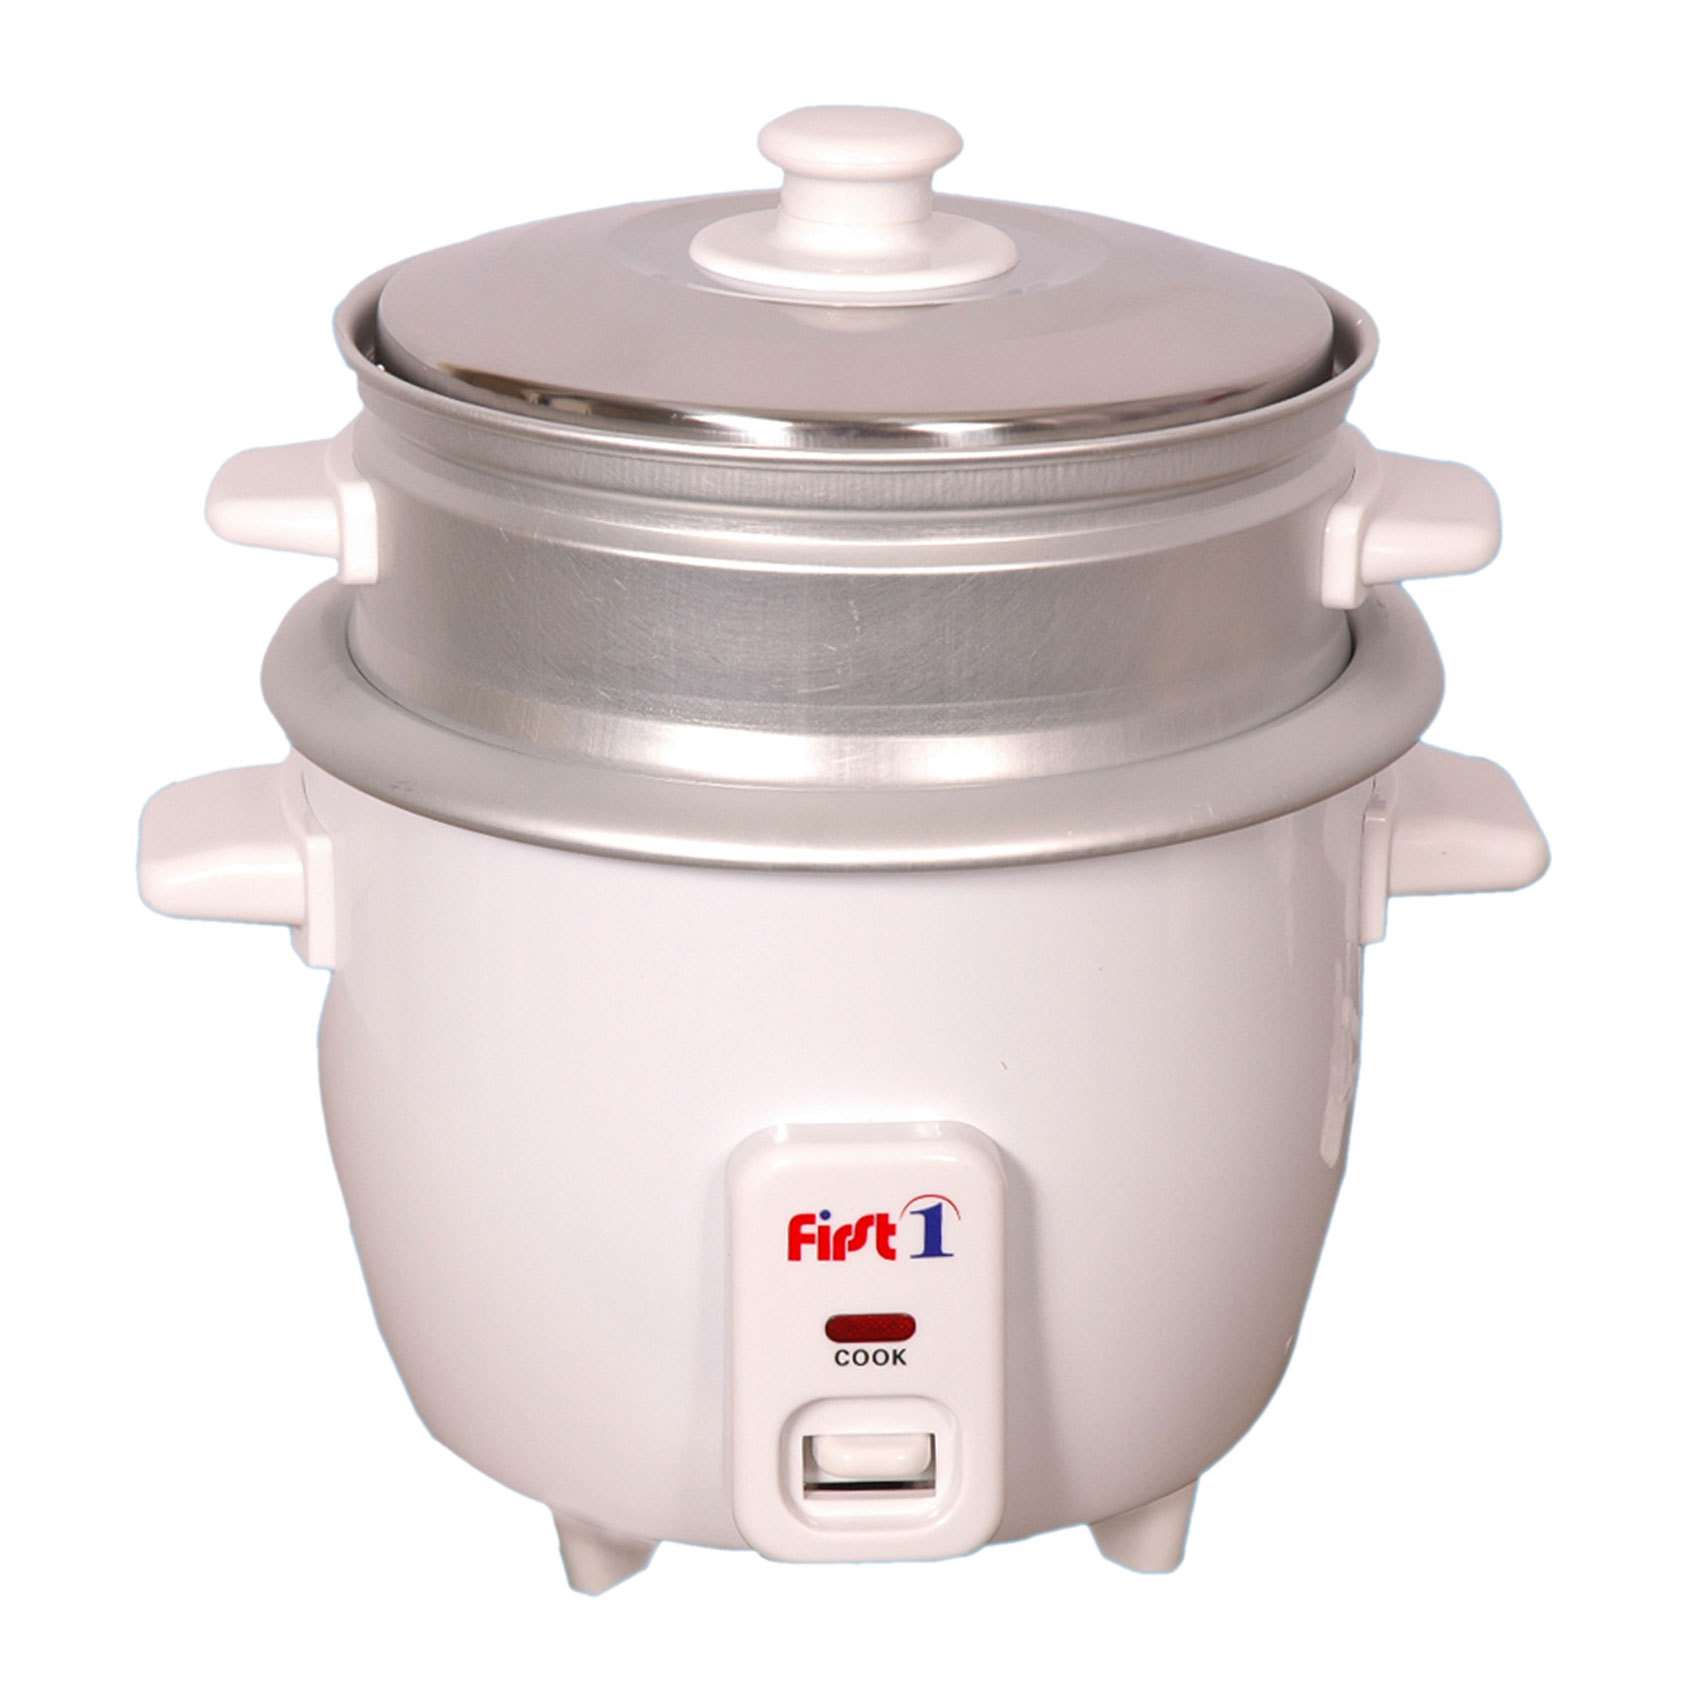 Buy First1 Rice Cooker F 06rc Online In Uae Carrefour